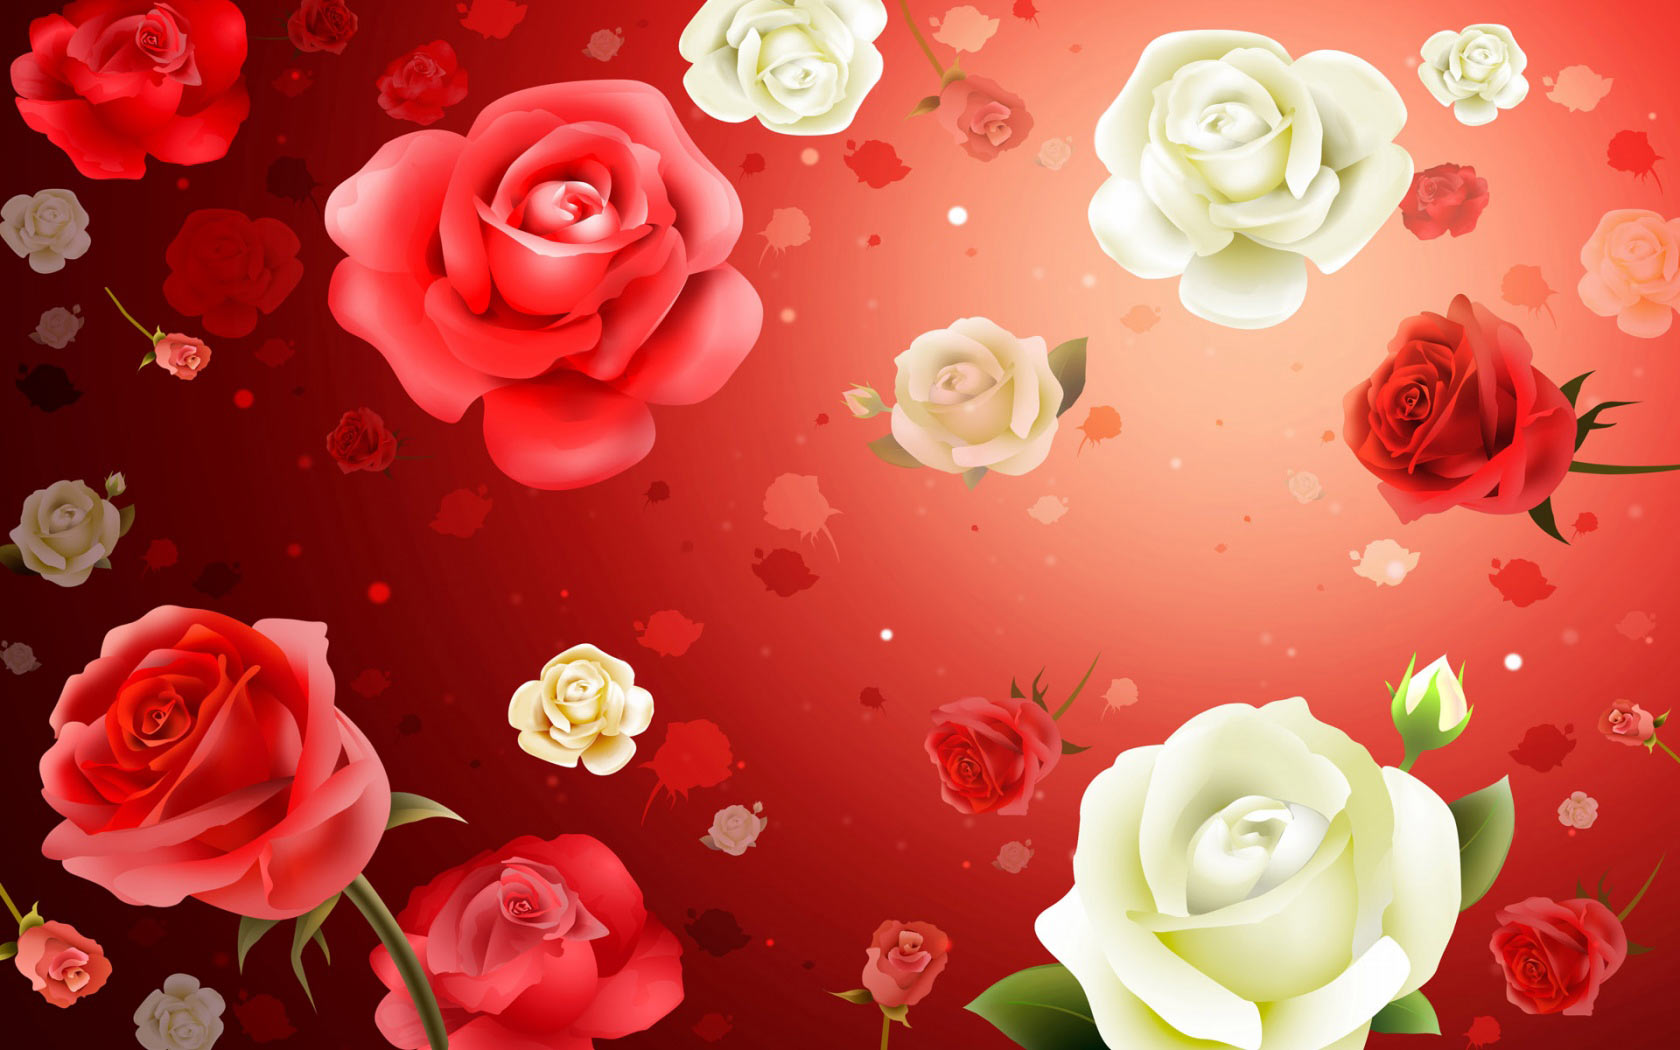 hd flowers wallpapers p Group with items